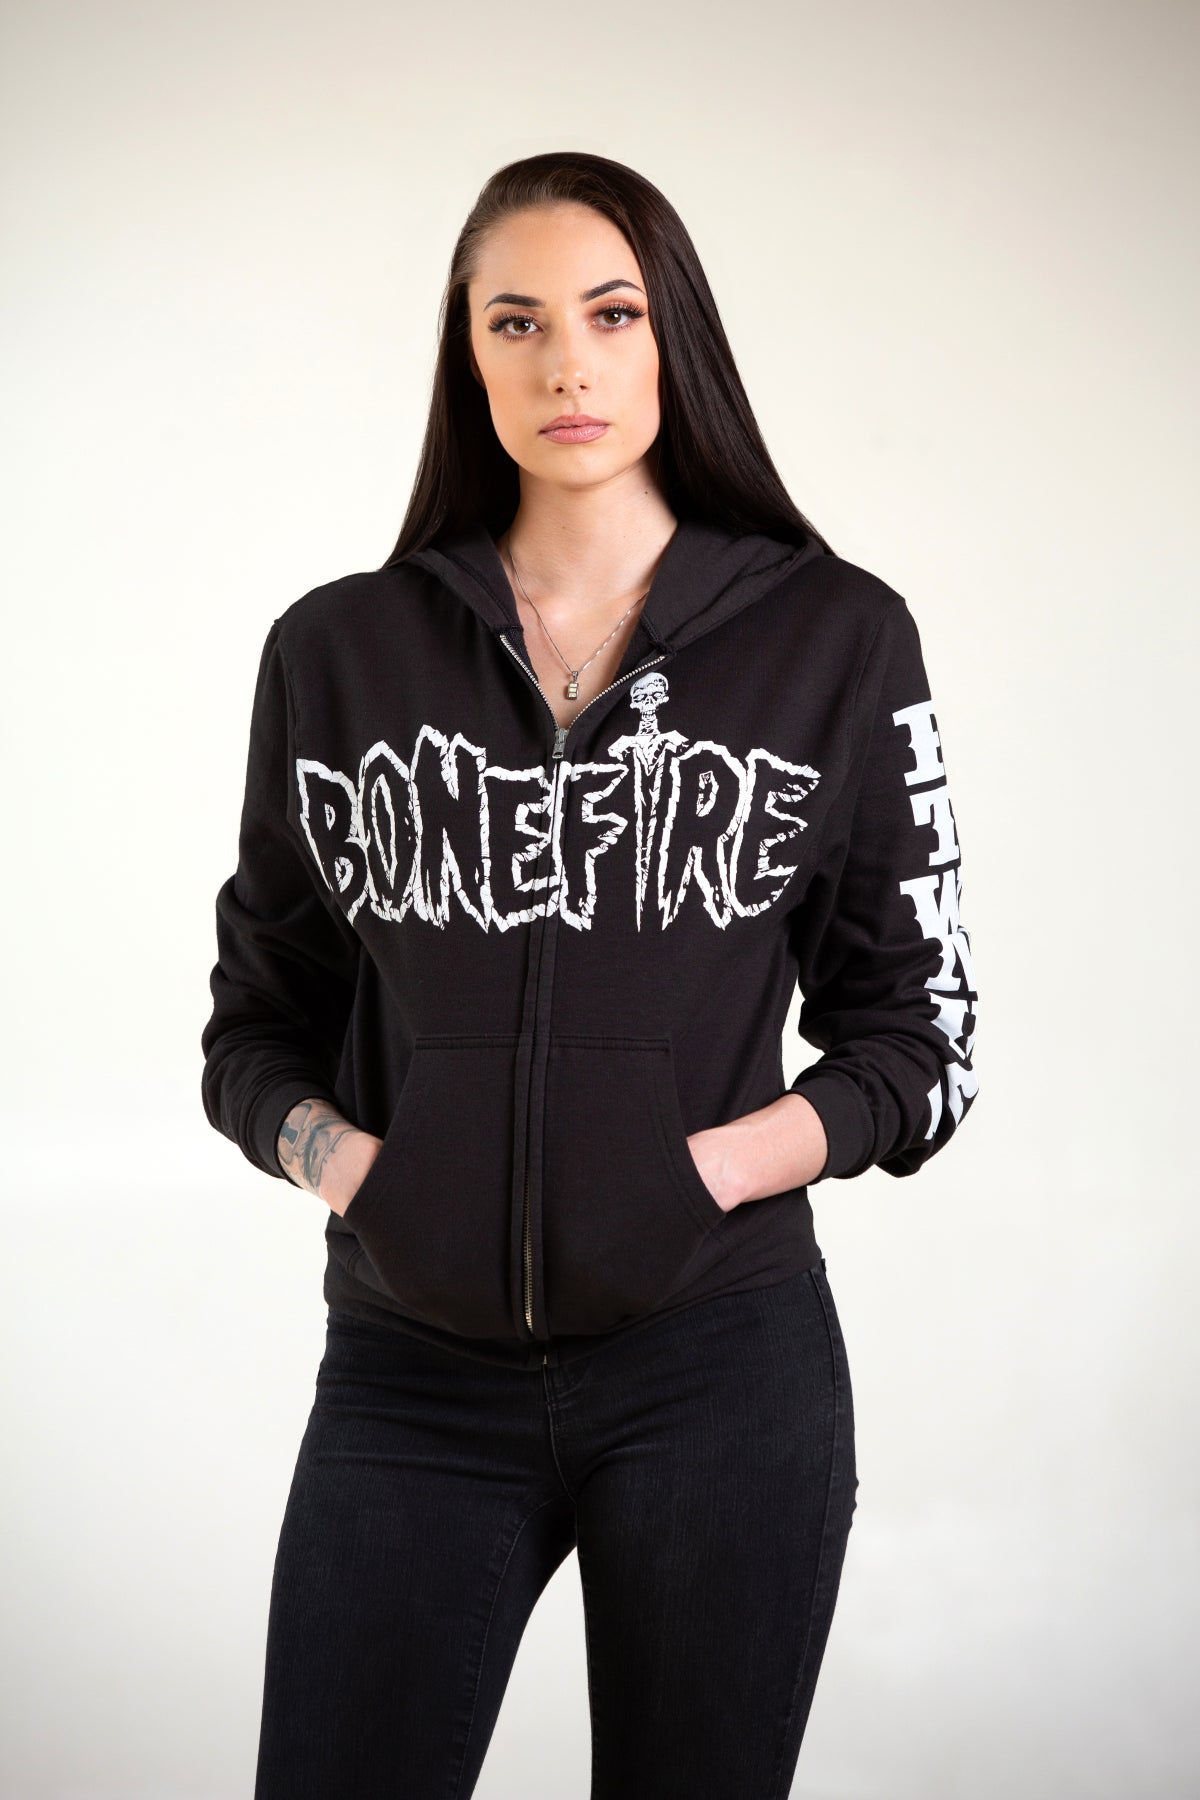 Image of BONEFIRE 'FADE' ZIP UP HOODIE - GLOWS IN THE DARK!